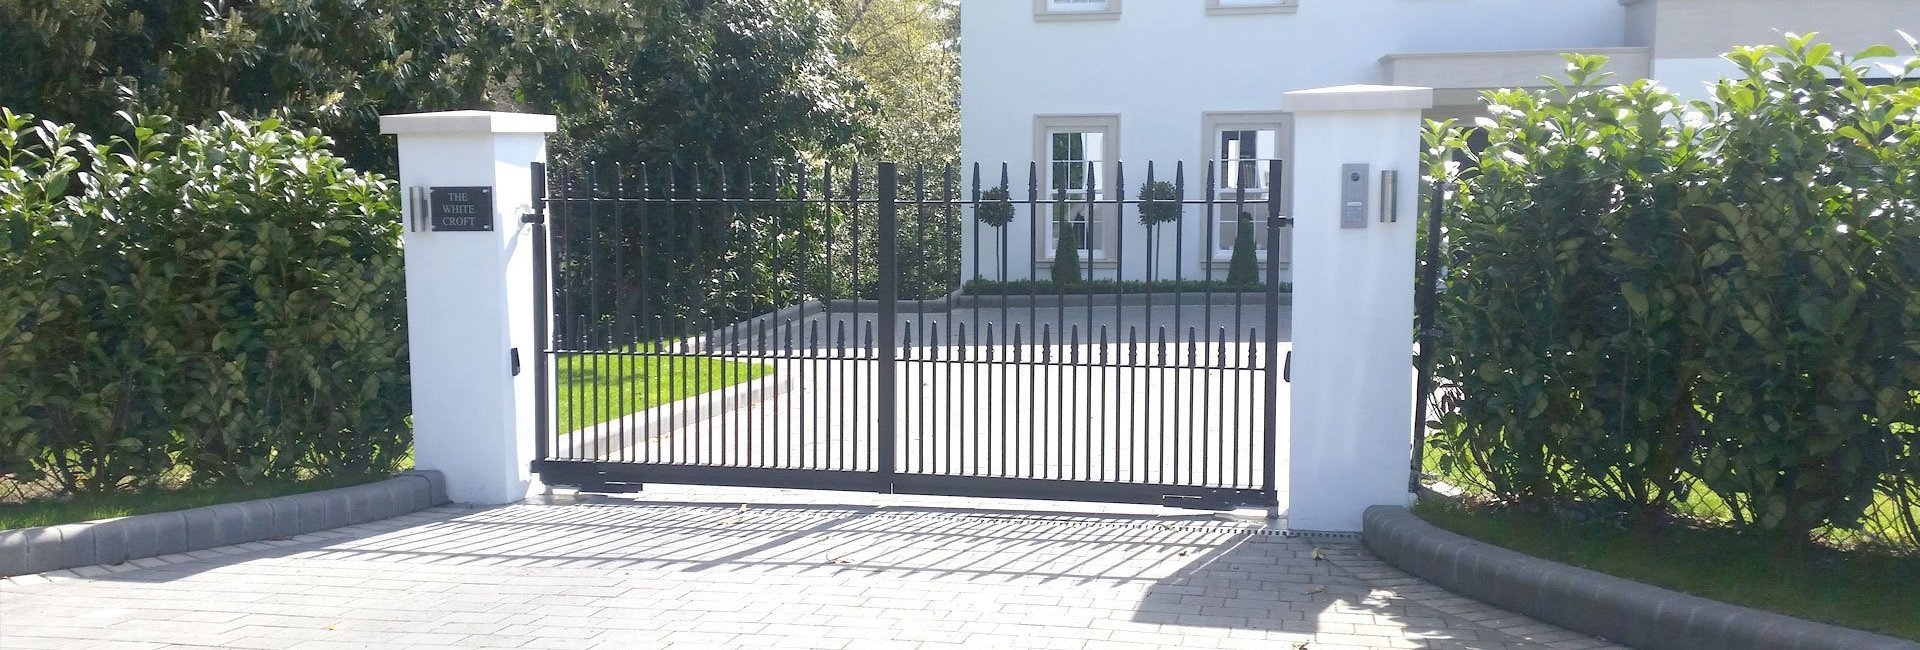 double metal gates in front of a large white house with gravel drive